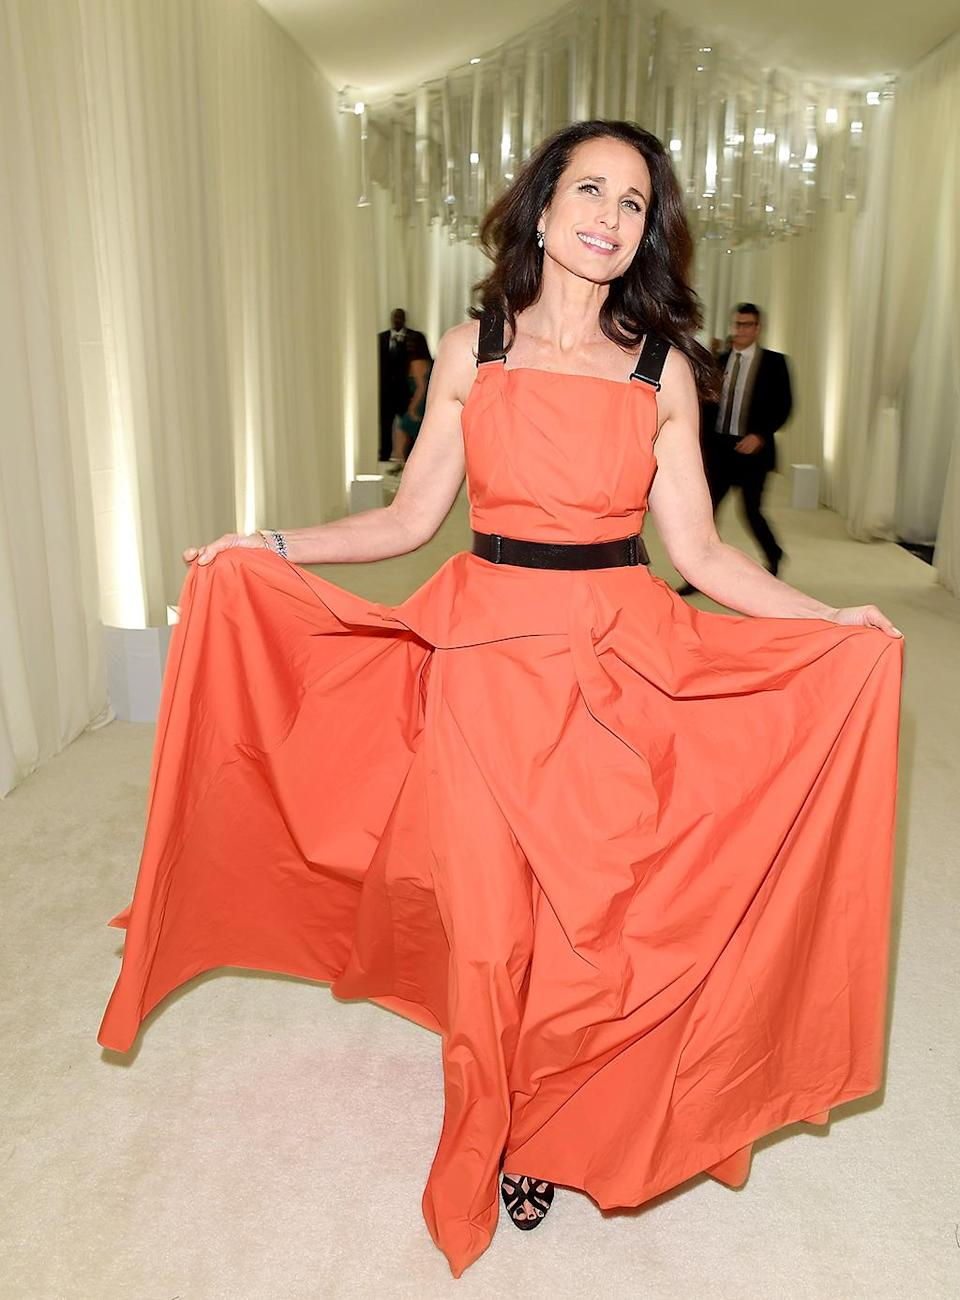 <p>Andie MacDowell attends Bulgari at the 25th Annual Elton John AIDS Foundation's Academy Awards Viewing Party at on February 26, 2017 in Los Angeles, California. (Photo by Venturelli/Getty Images for BVLGARI) </p>